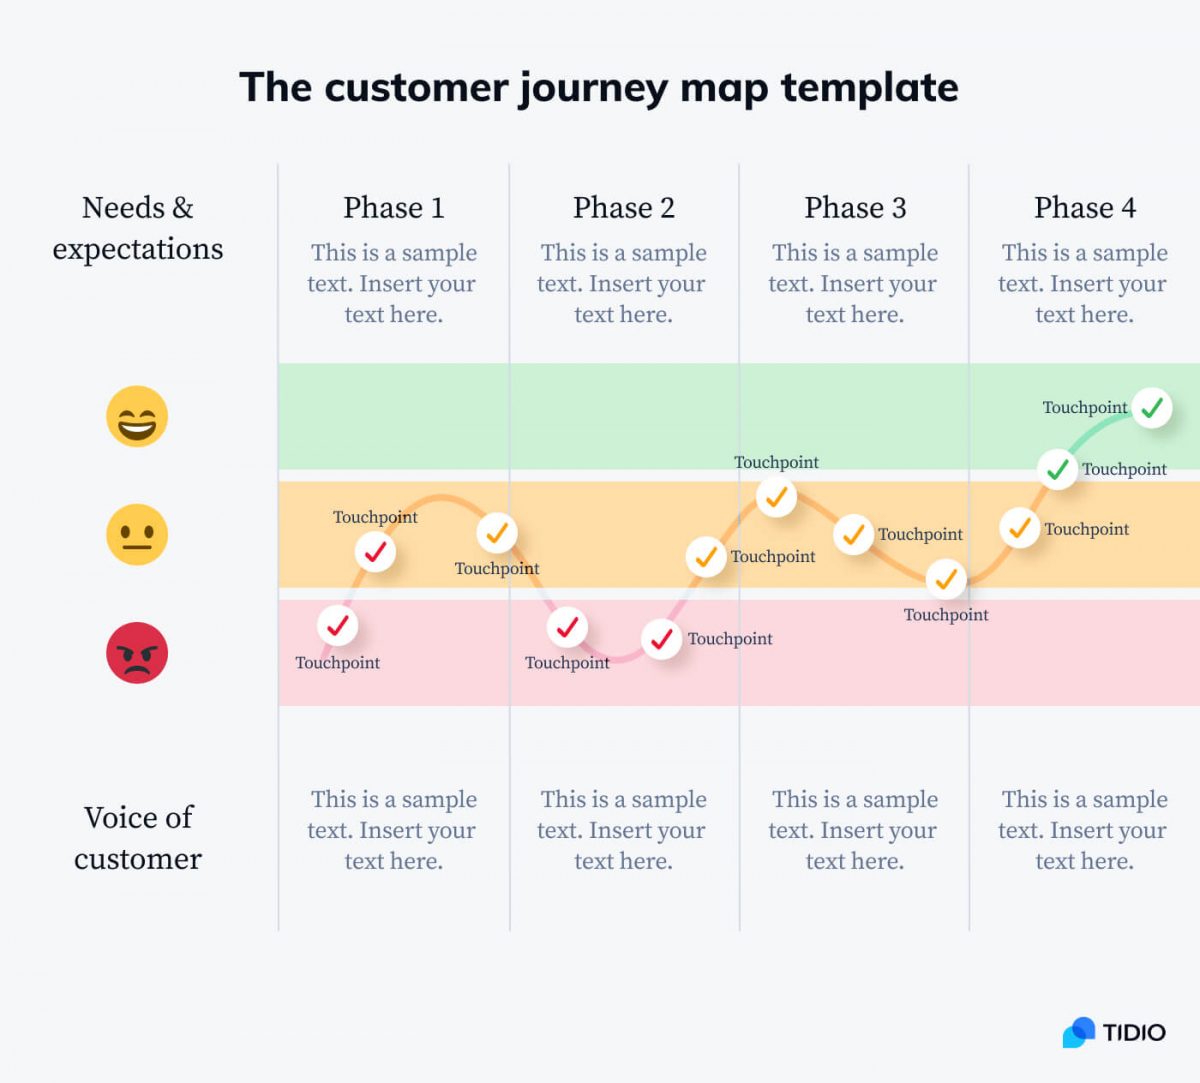 The customer journey map template